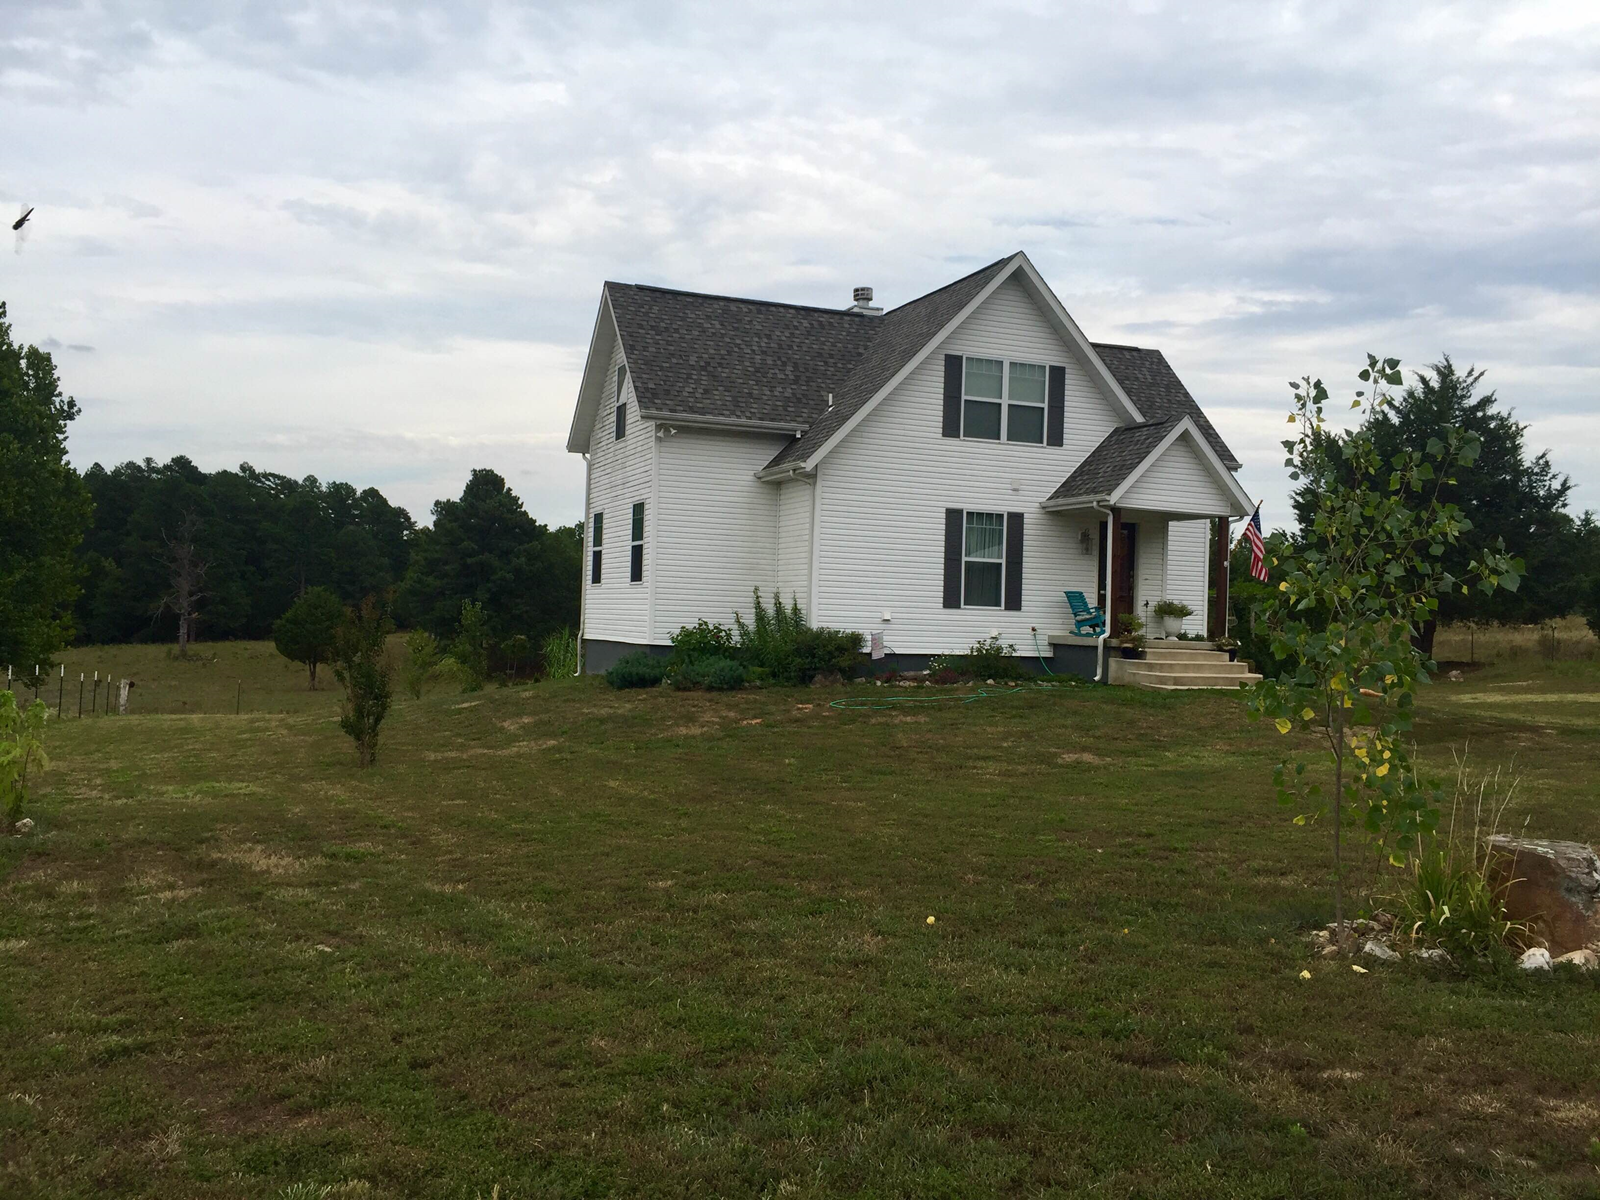 Ozark Country Home and Hobby Farm for sale near Salem, AR